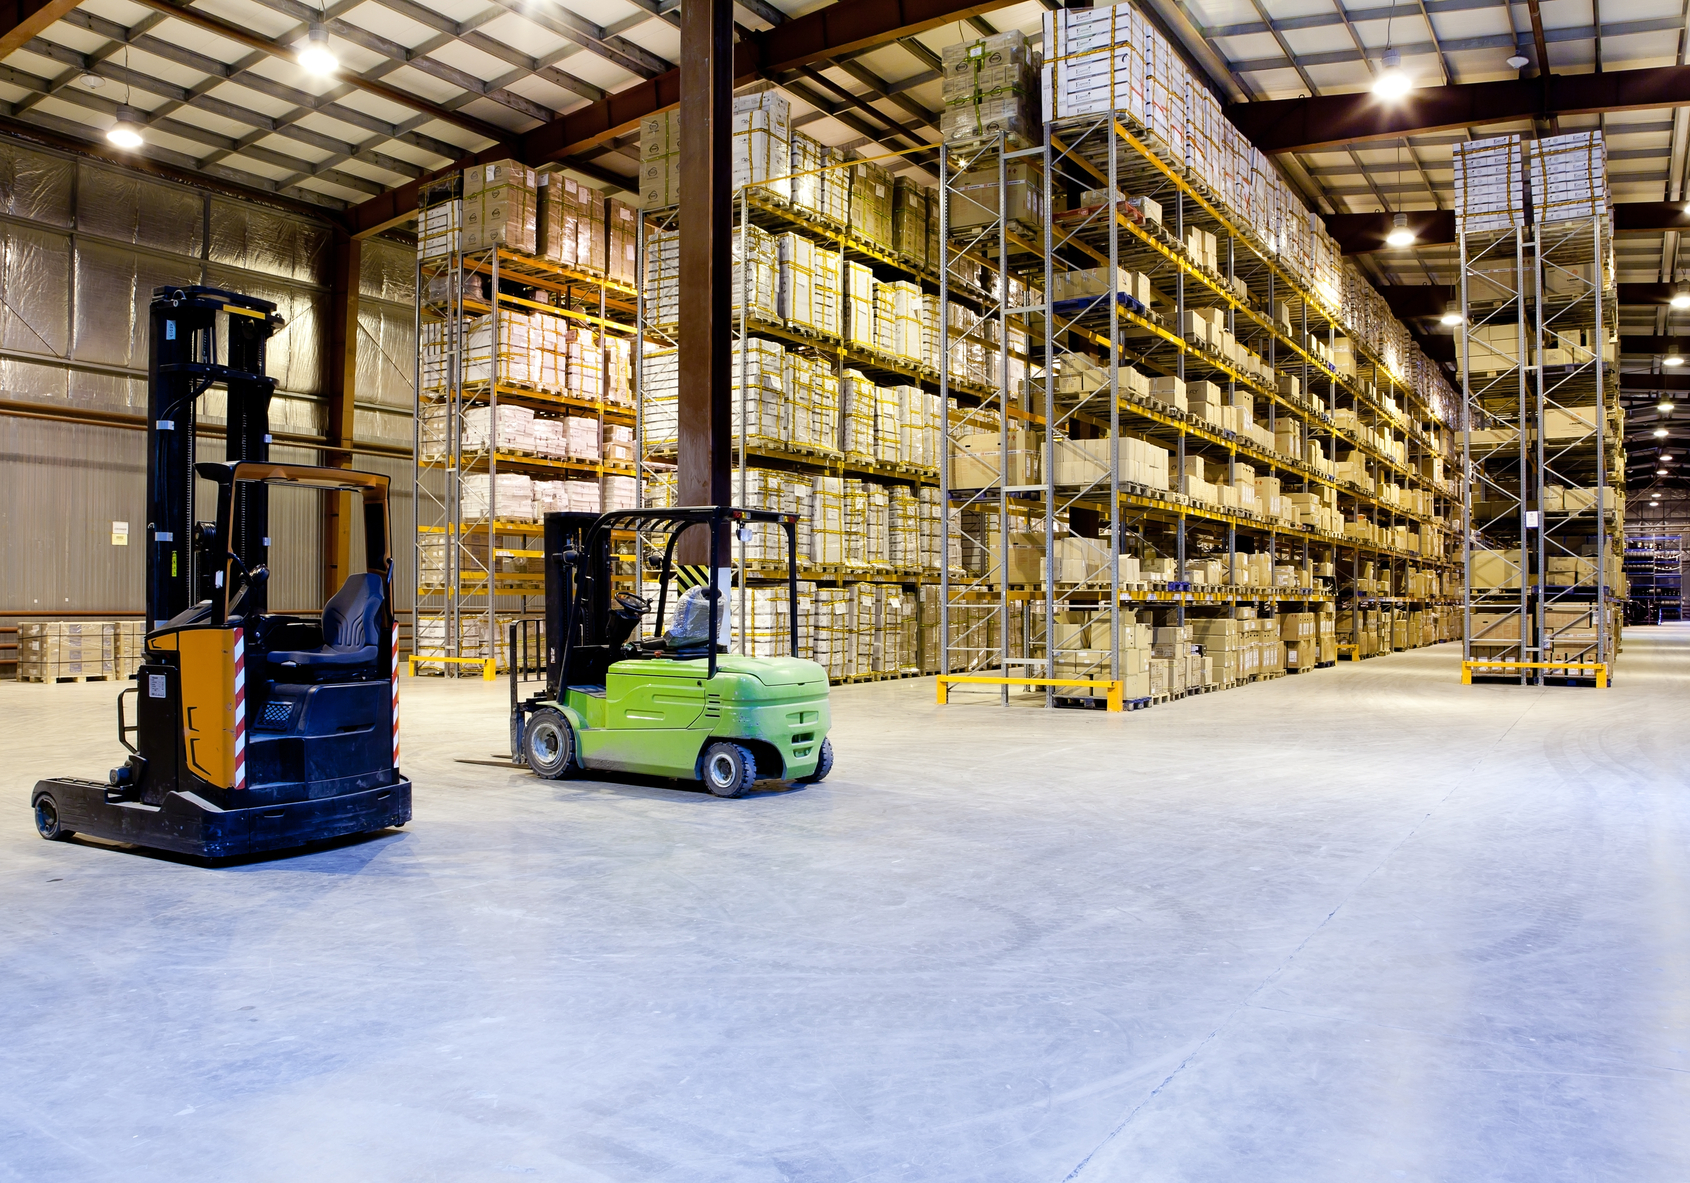 Warehouse space for lease close to a major shipping hub